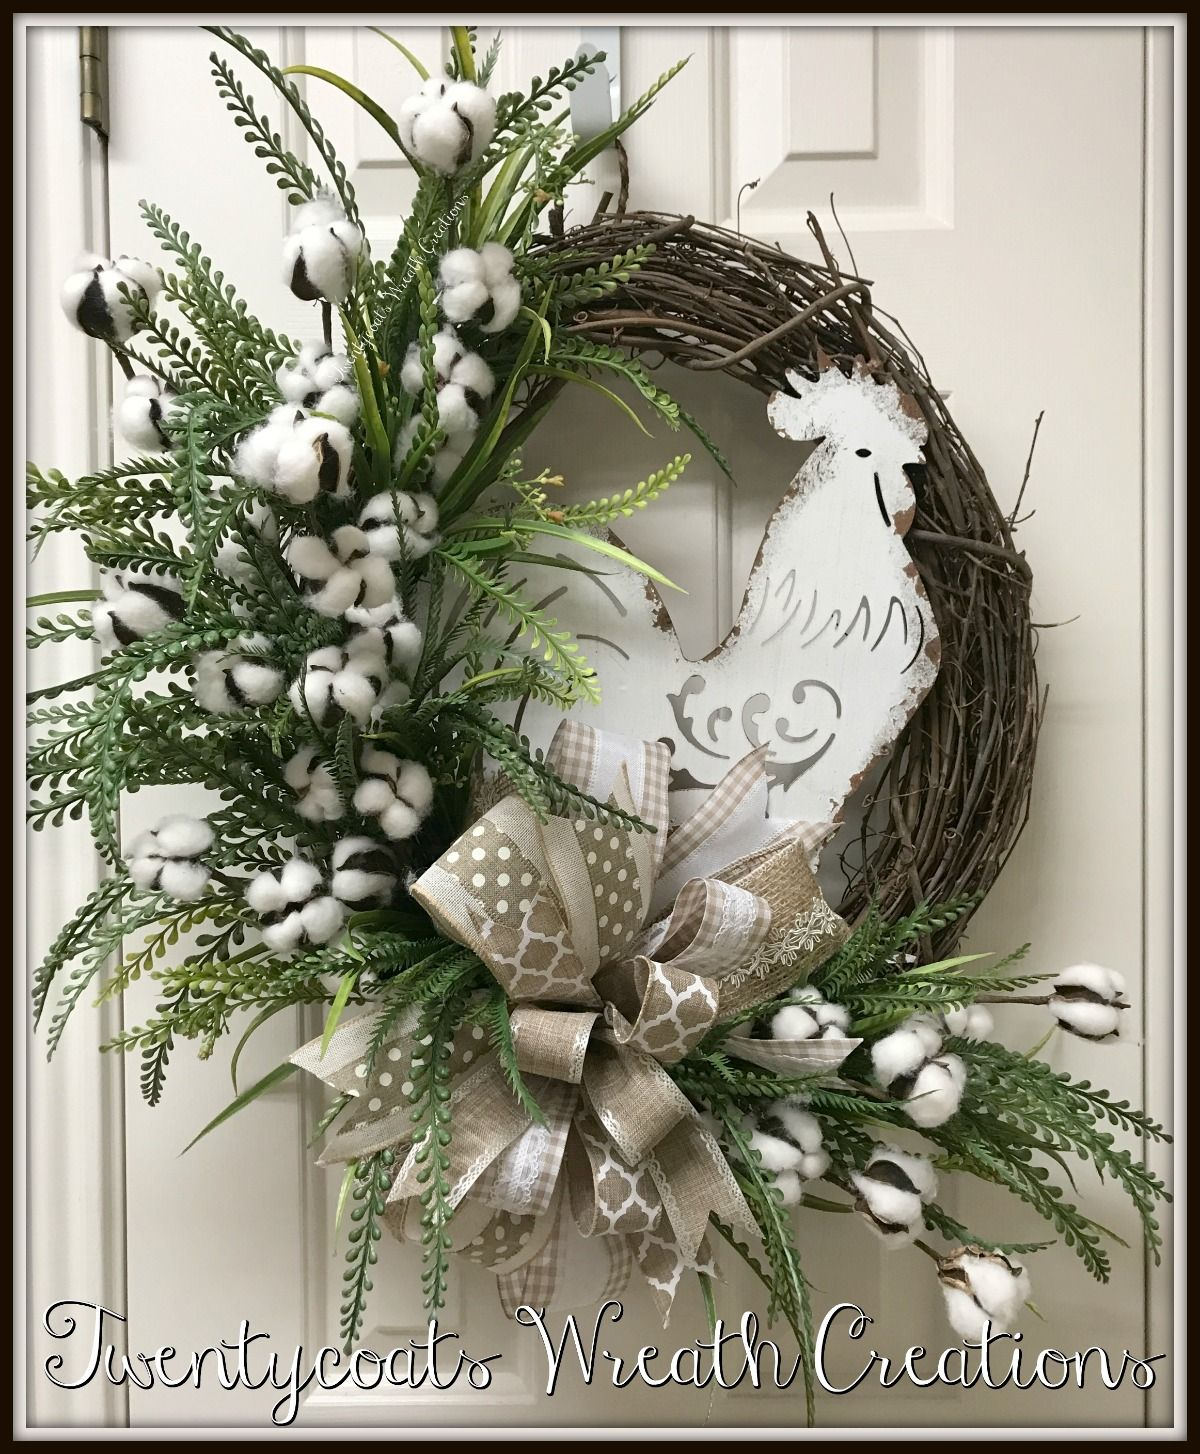 White Rooster Grapevine Wreath With Greenery Cotton Bolls And Bow By Twentycoats Wreath Creat Christmas Wreaths Diy Wreath Decor Christmas Decorations Wreaths